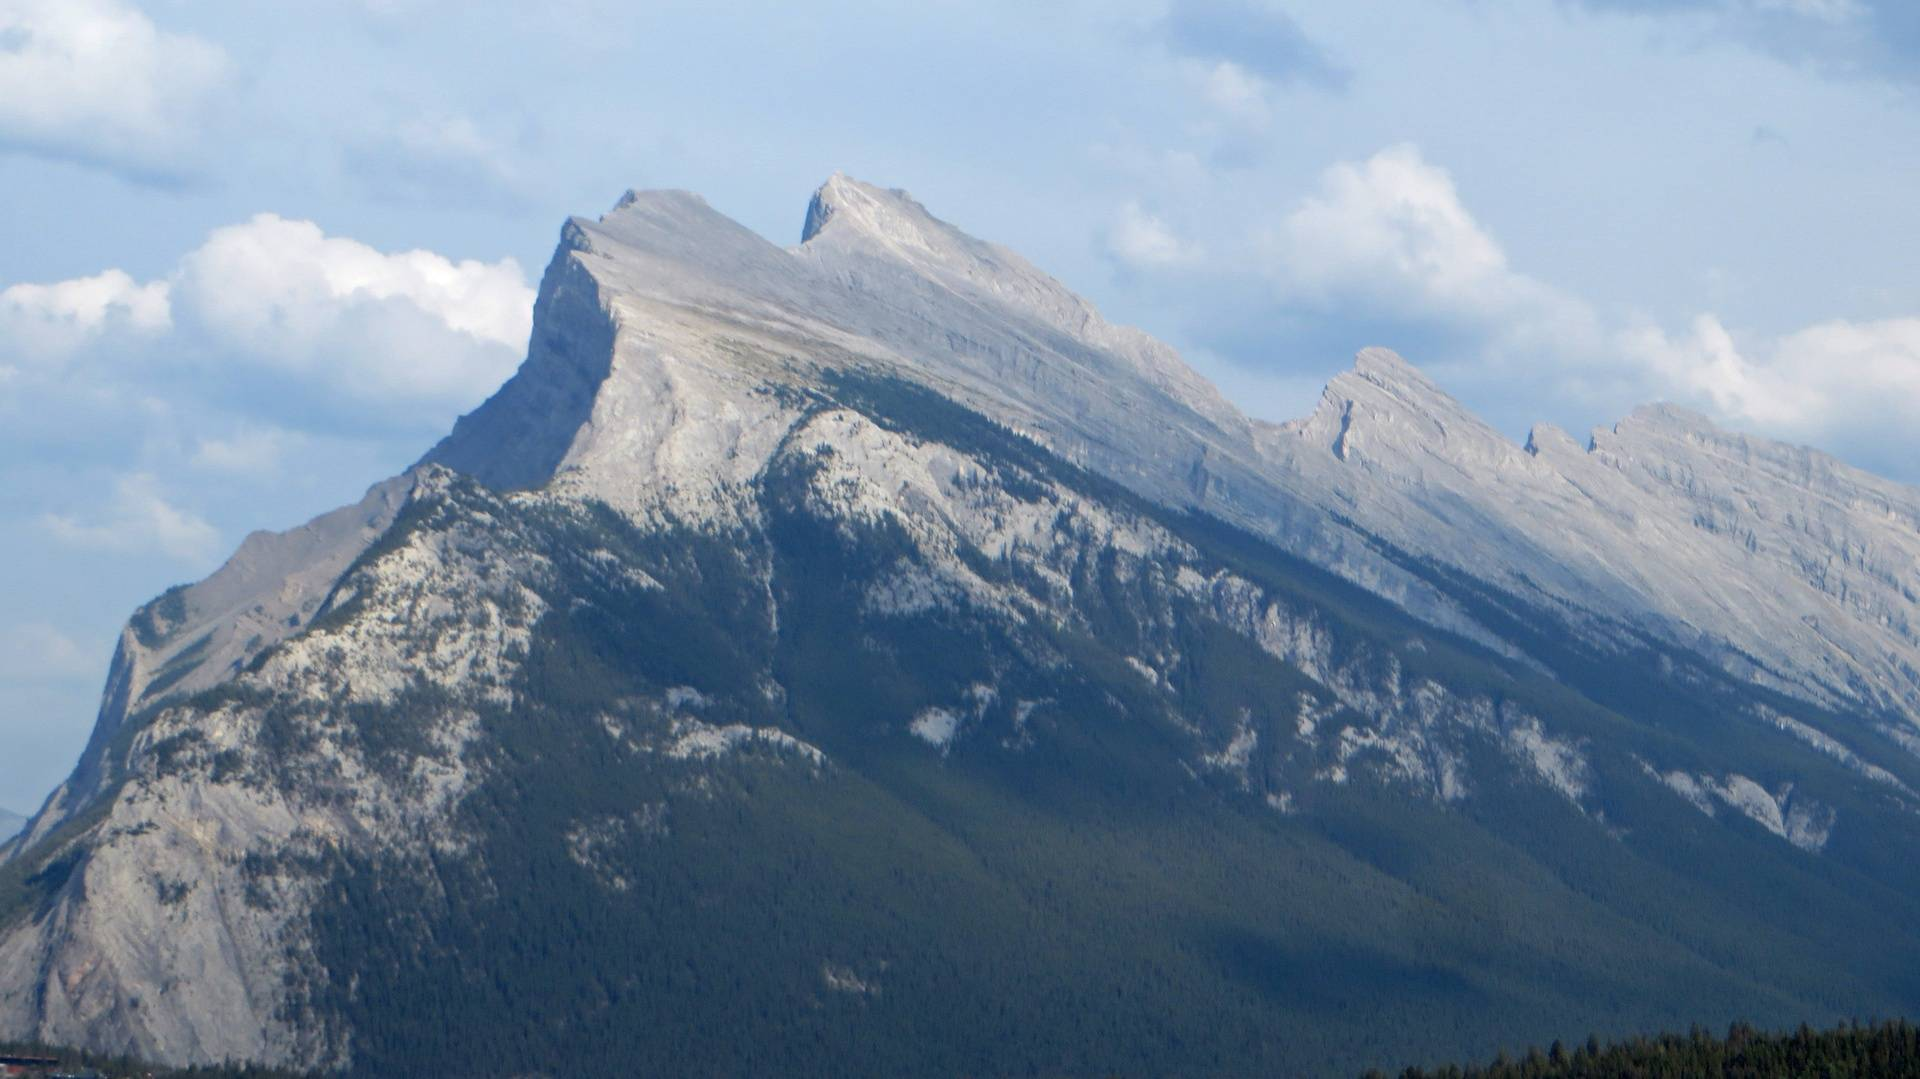 Along road from Banff to Lake Louise